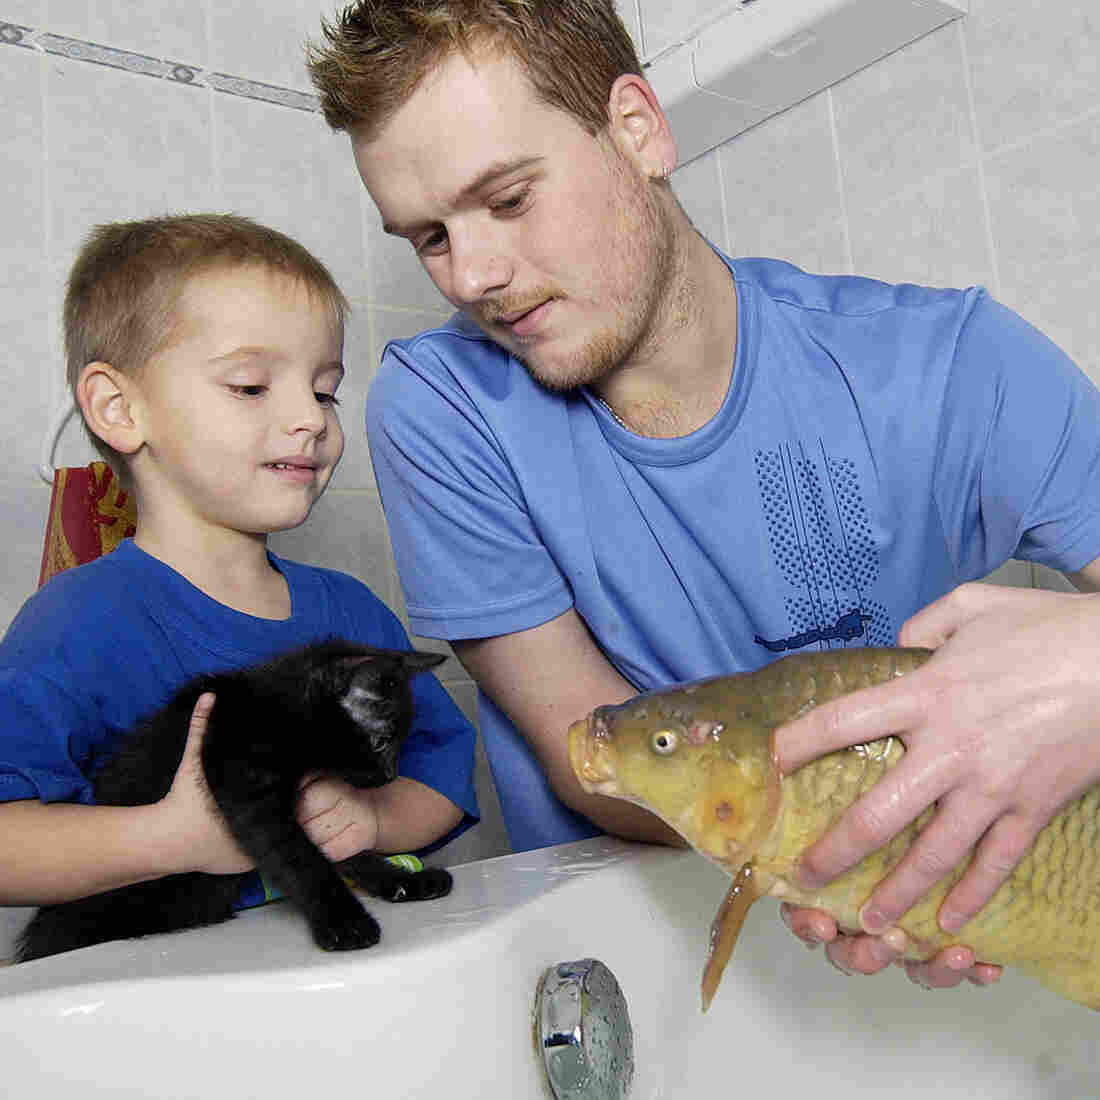 Lukas Hutta of Ostrov, Czech Republic, and his son Lukas check on the carp that they're keeping in the family bathtub before Christmas in this photo from 2004.